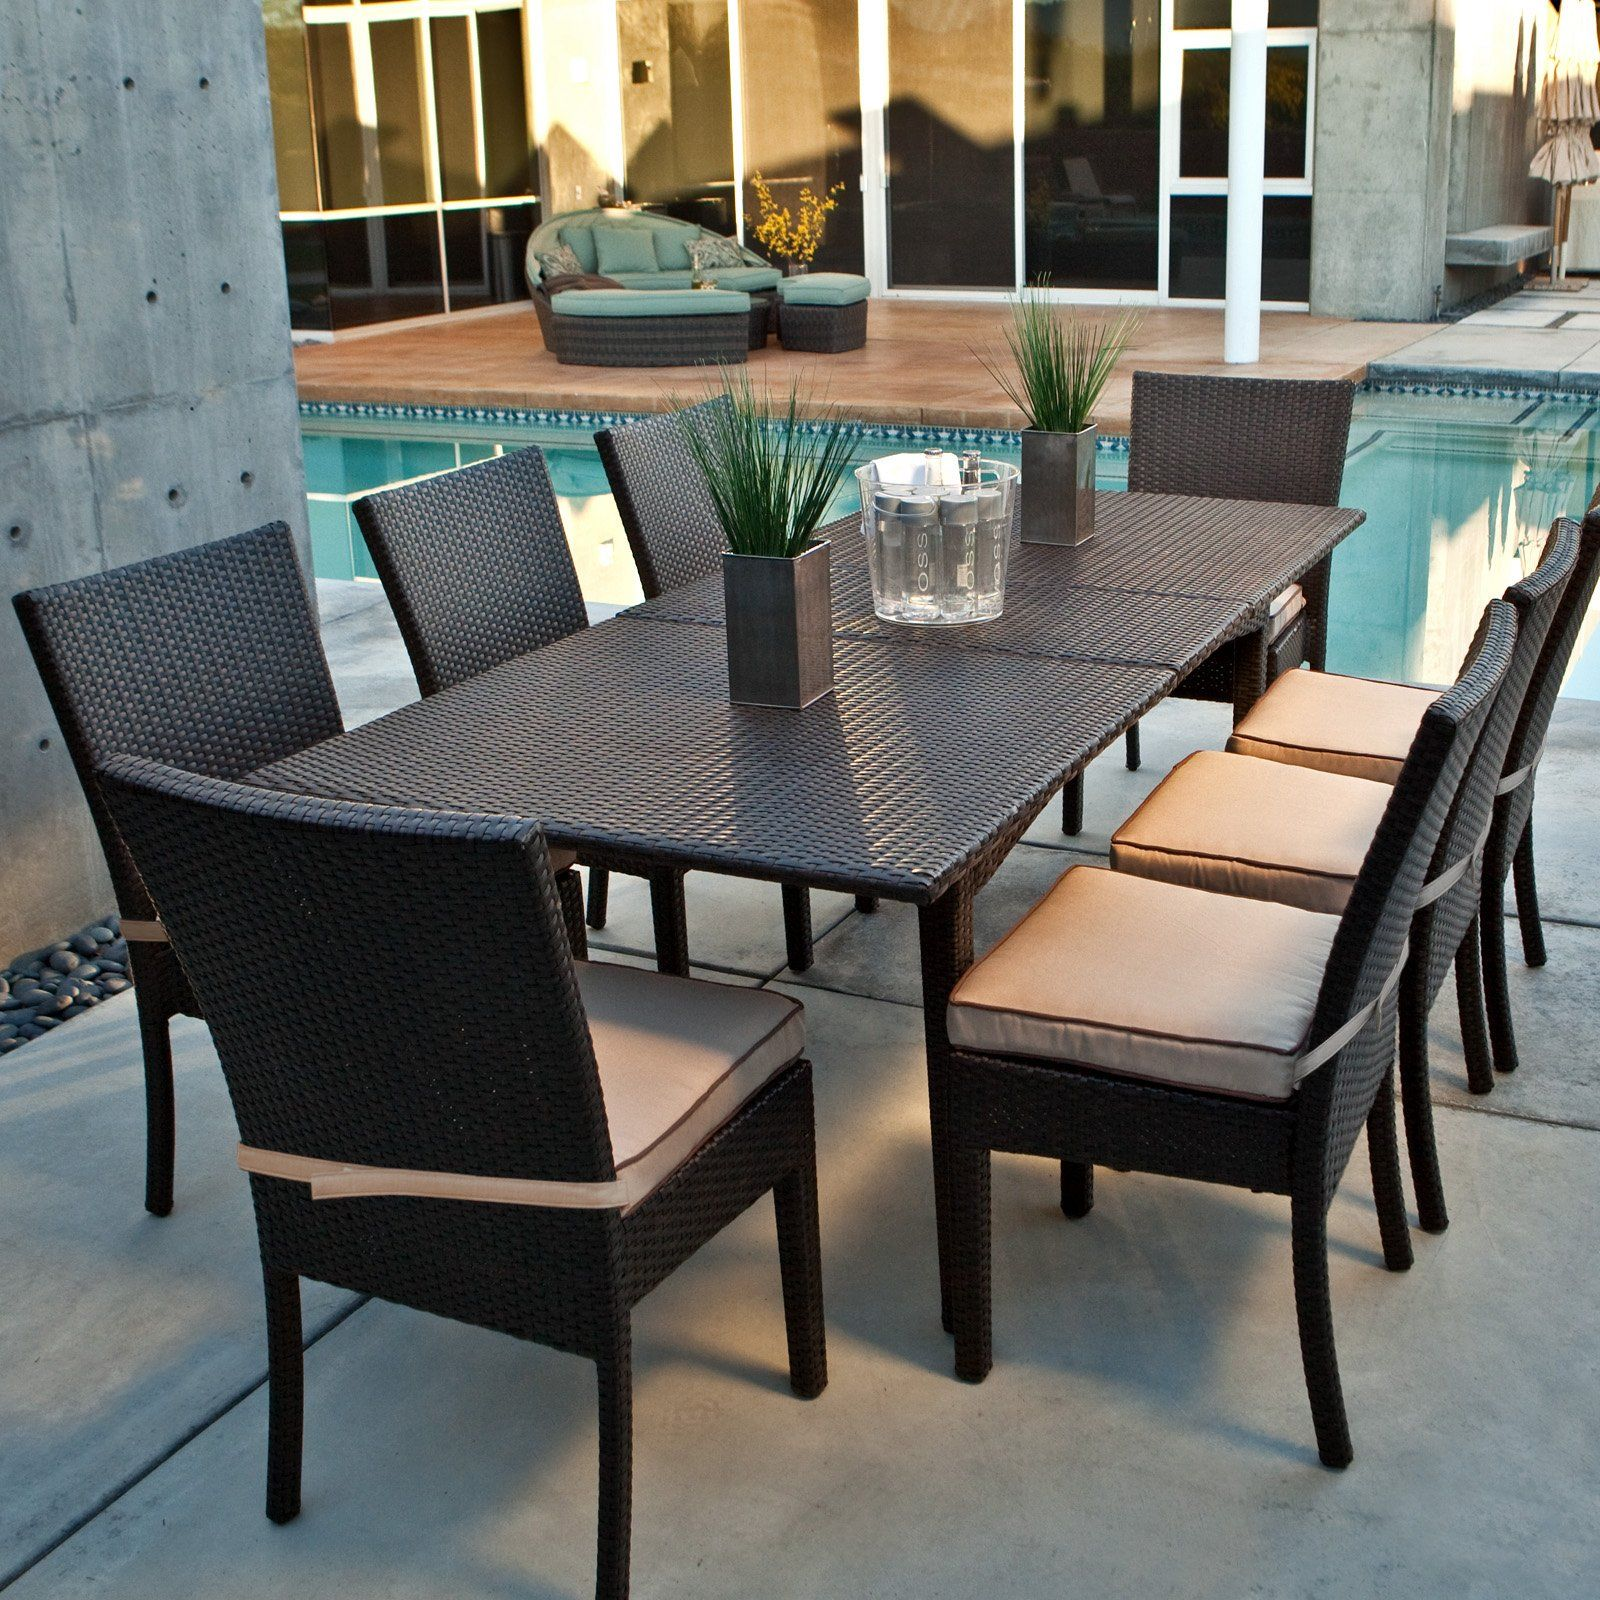 Coral Coast Vallejo All Weather Wicker Extension Dining Set - All weather outdoor dining table